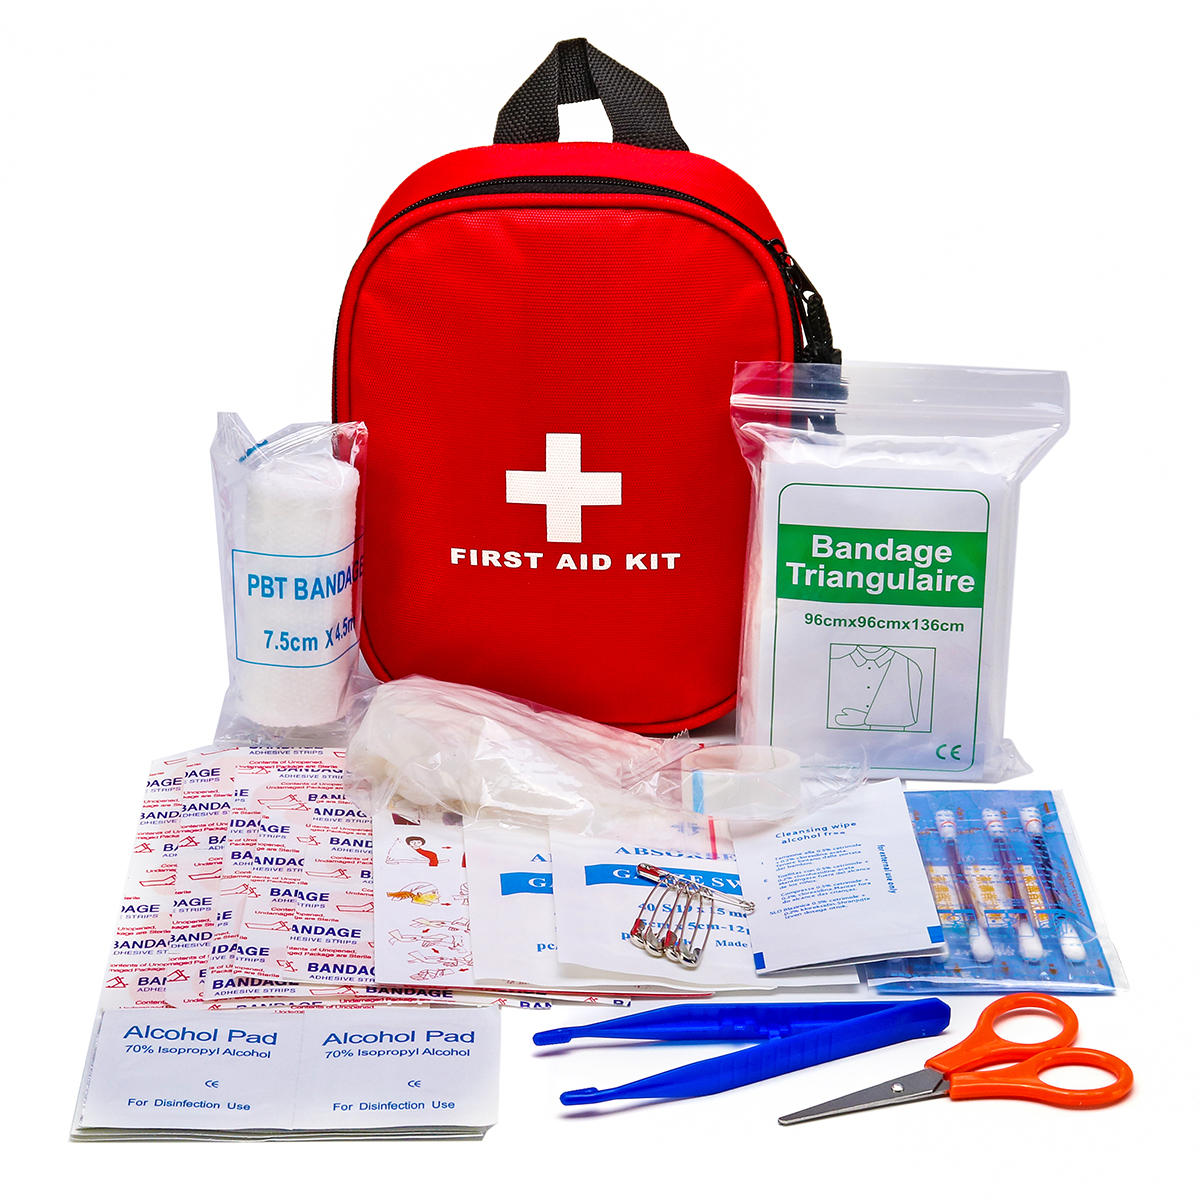 46Pcs Mini SOS Emergency Survival Kit First Aid Bag Medical Kits Treatment Pack Outdoor Wilderness Survival Red